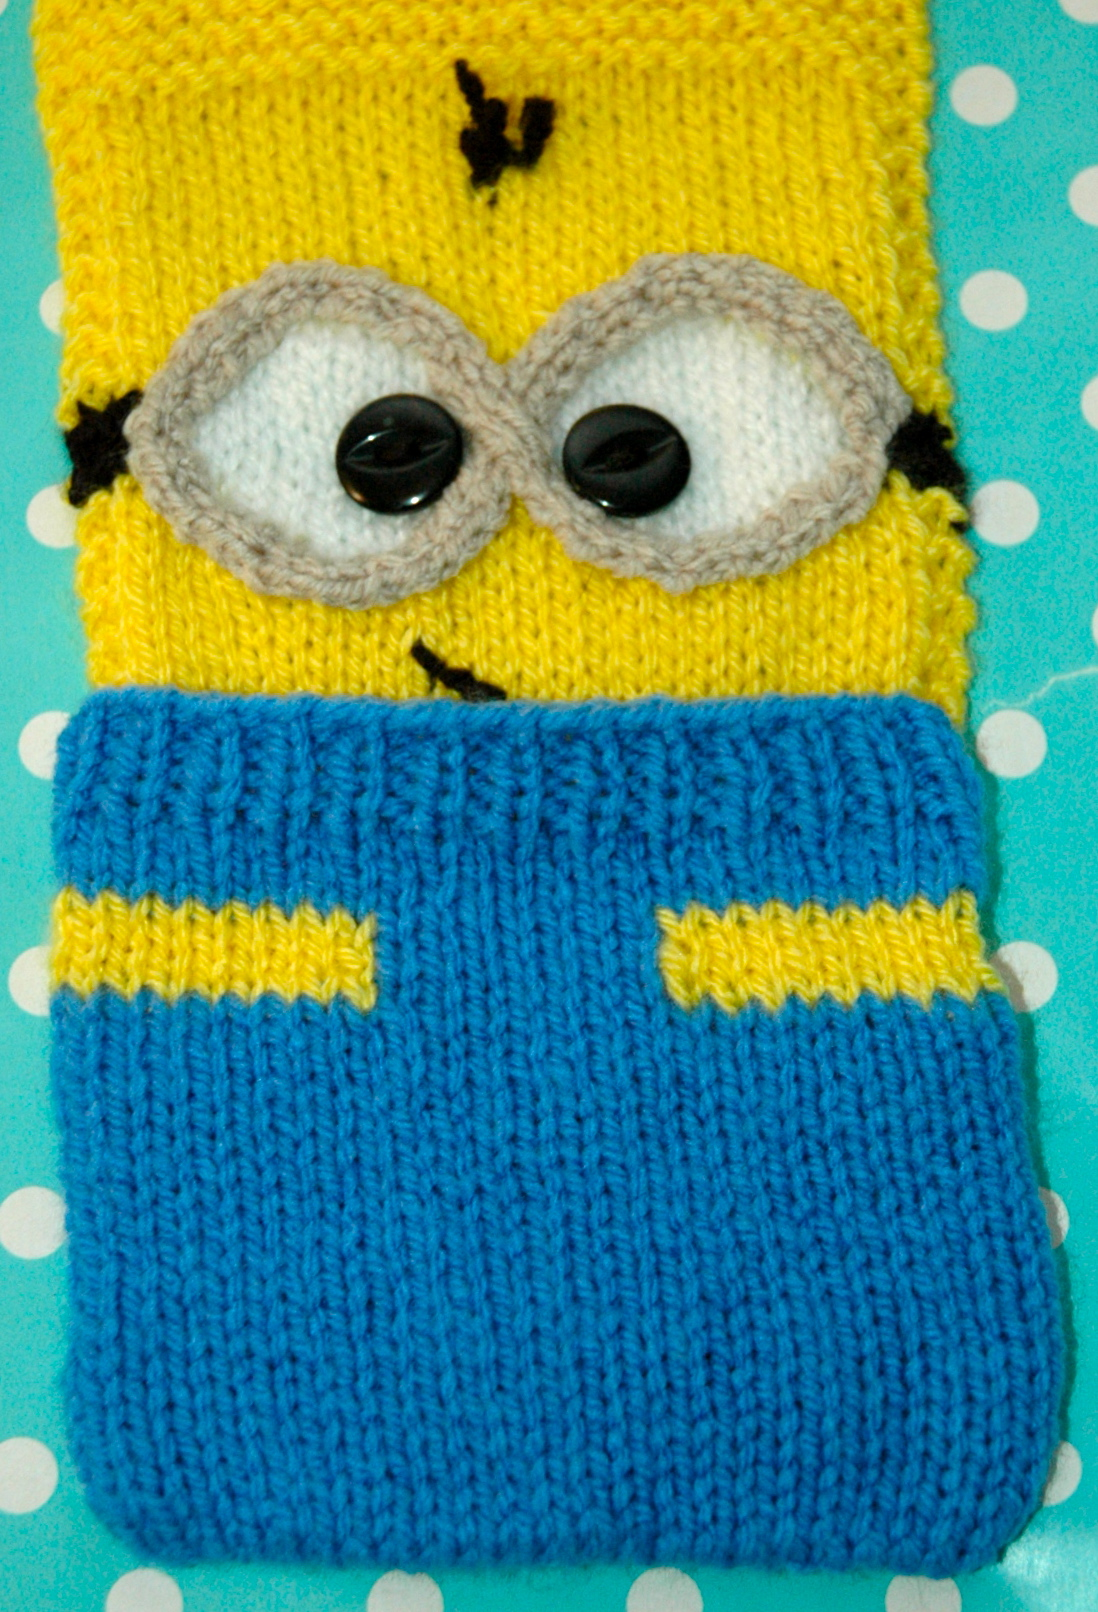 DK   Knitting pattern   Minion Style Scarf (looks like) KnitsRUs